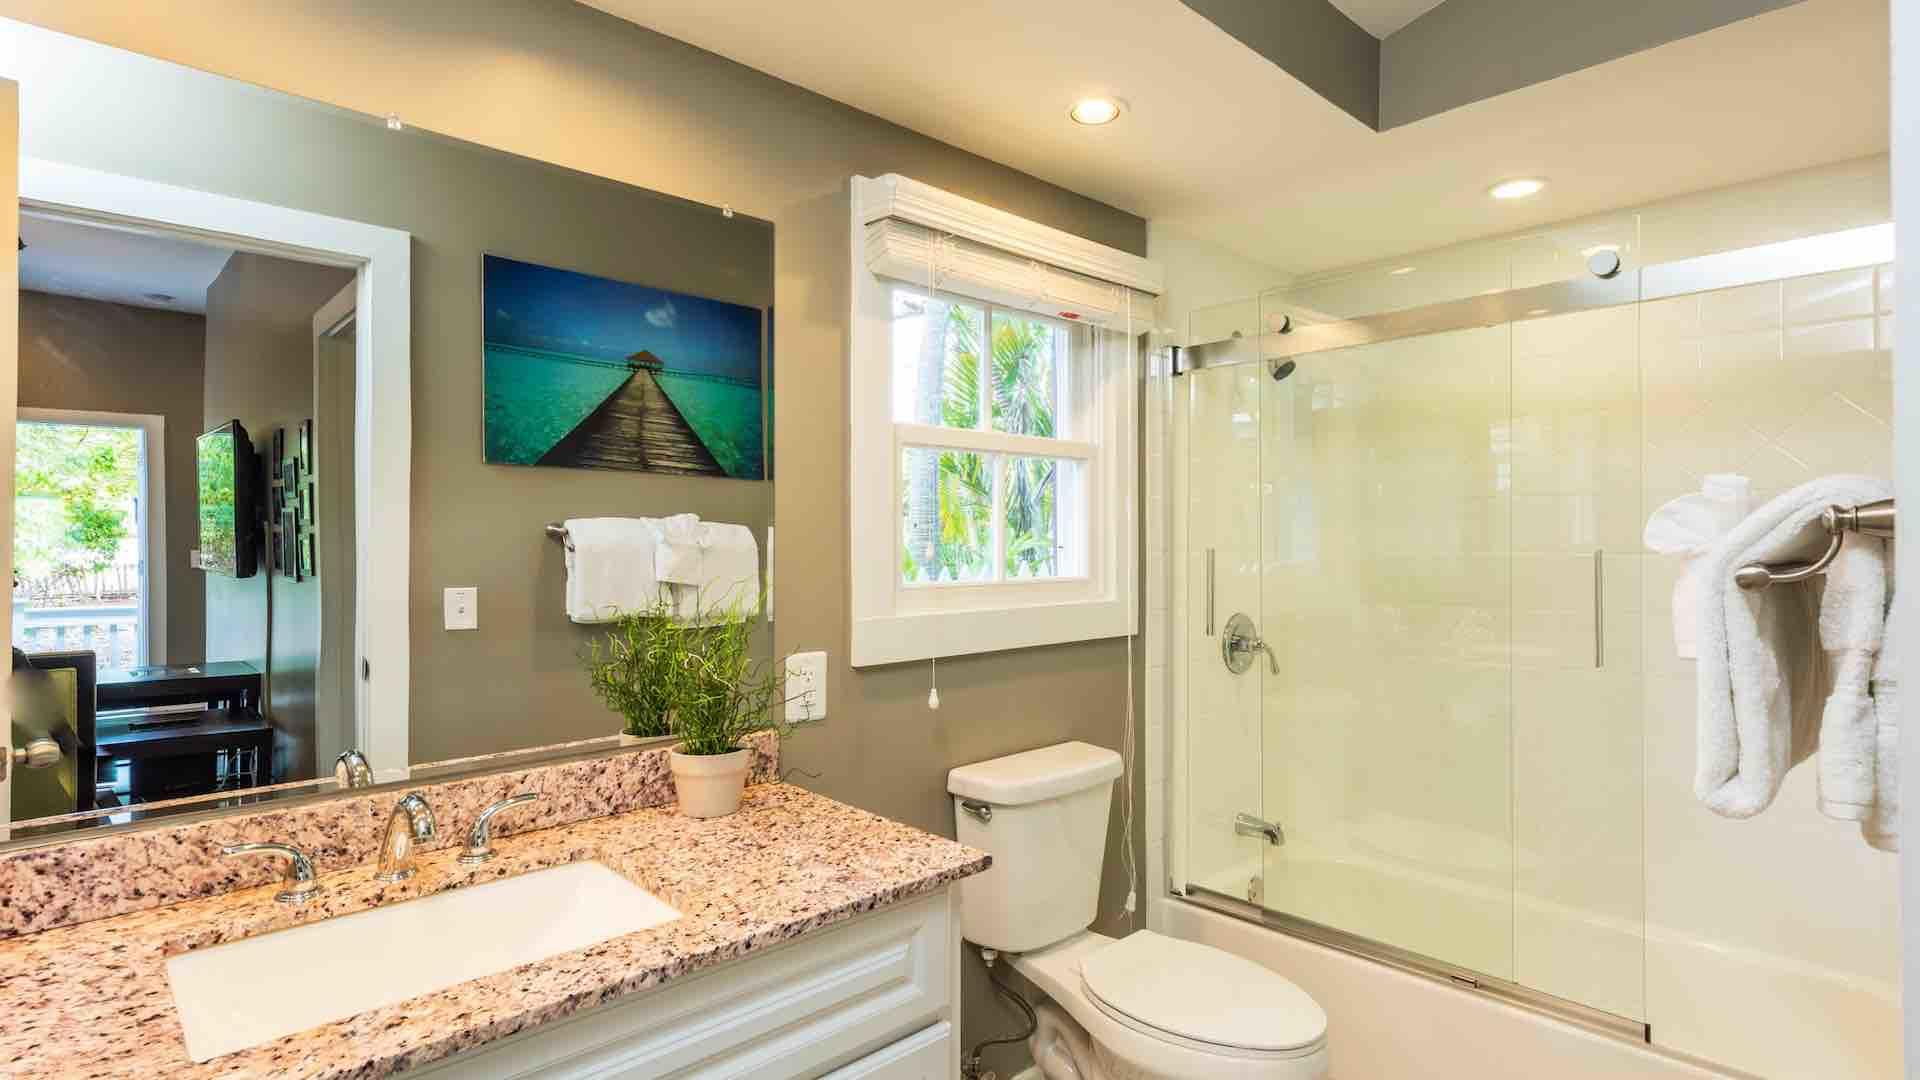 The guest bathroom has a shower and tub combo...